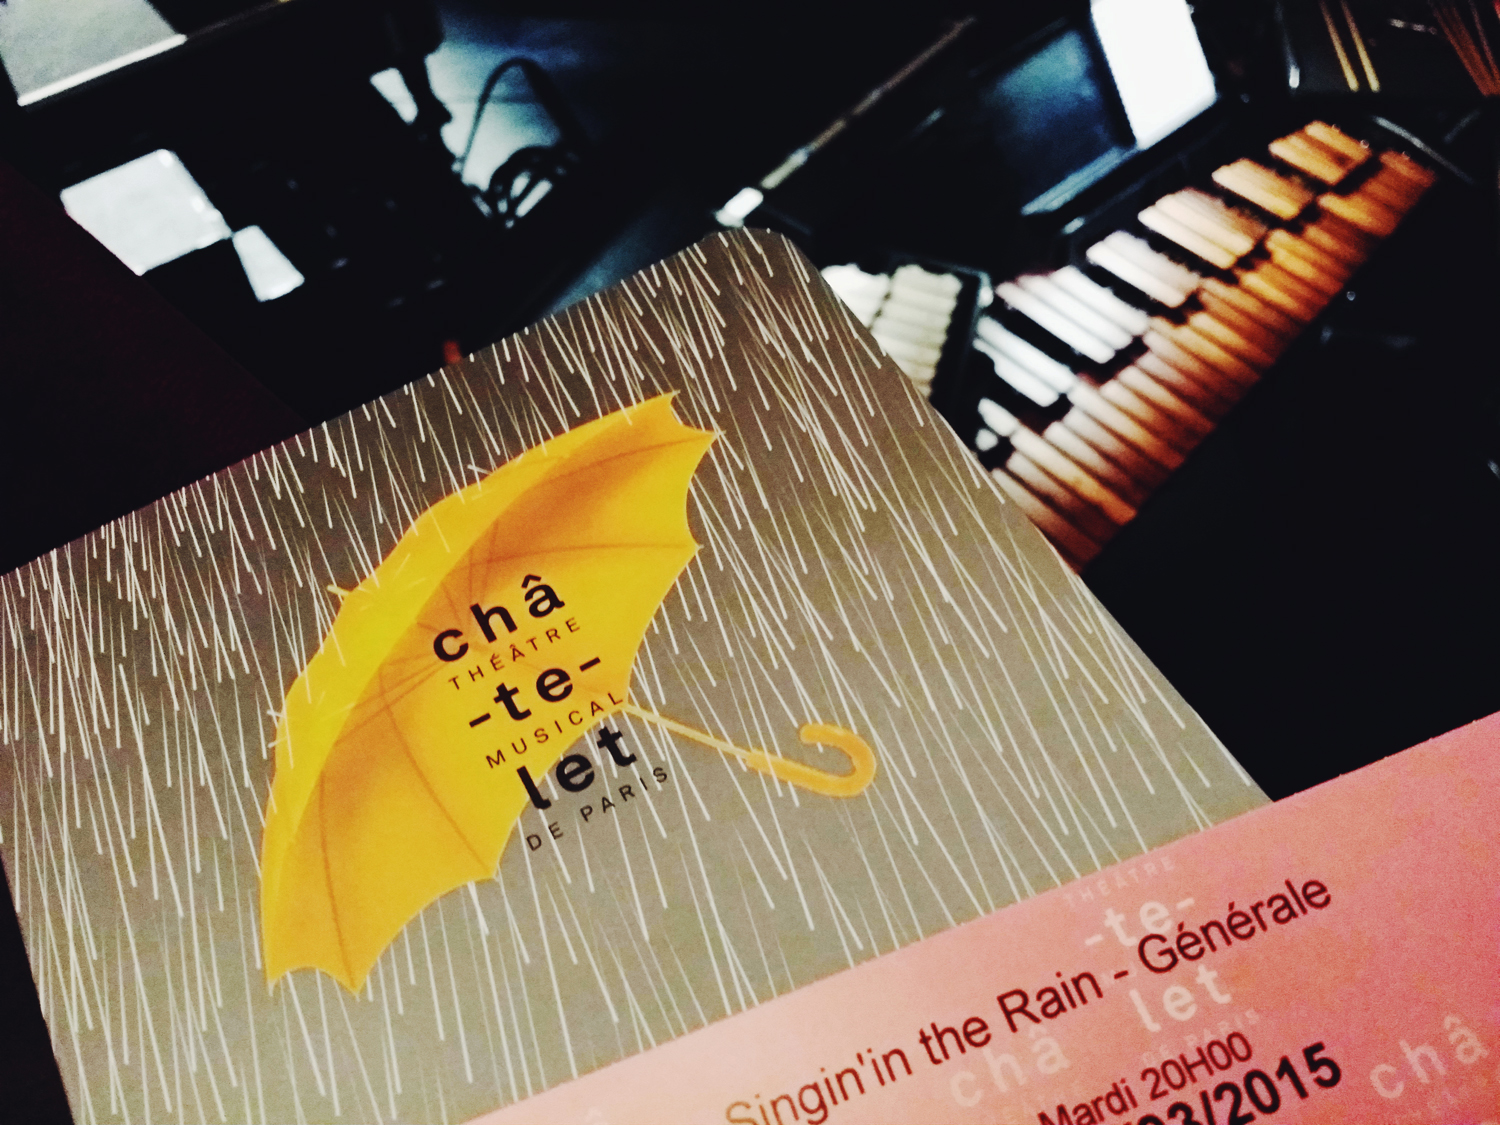 Programme spectacle Singin in the rain nouvelle production Théâtre du Chatelet paris musical show poster Robert Carsen photo by United States of Paris blog